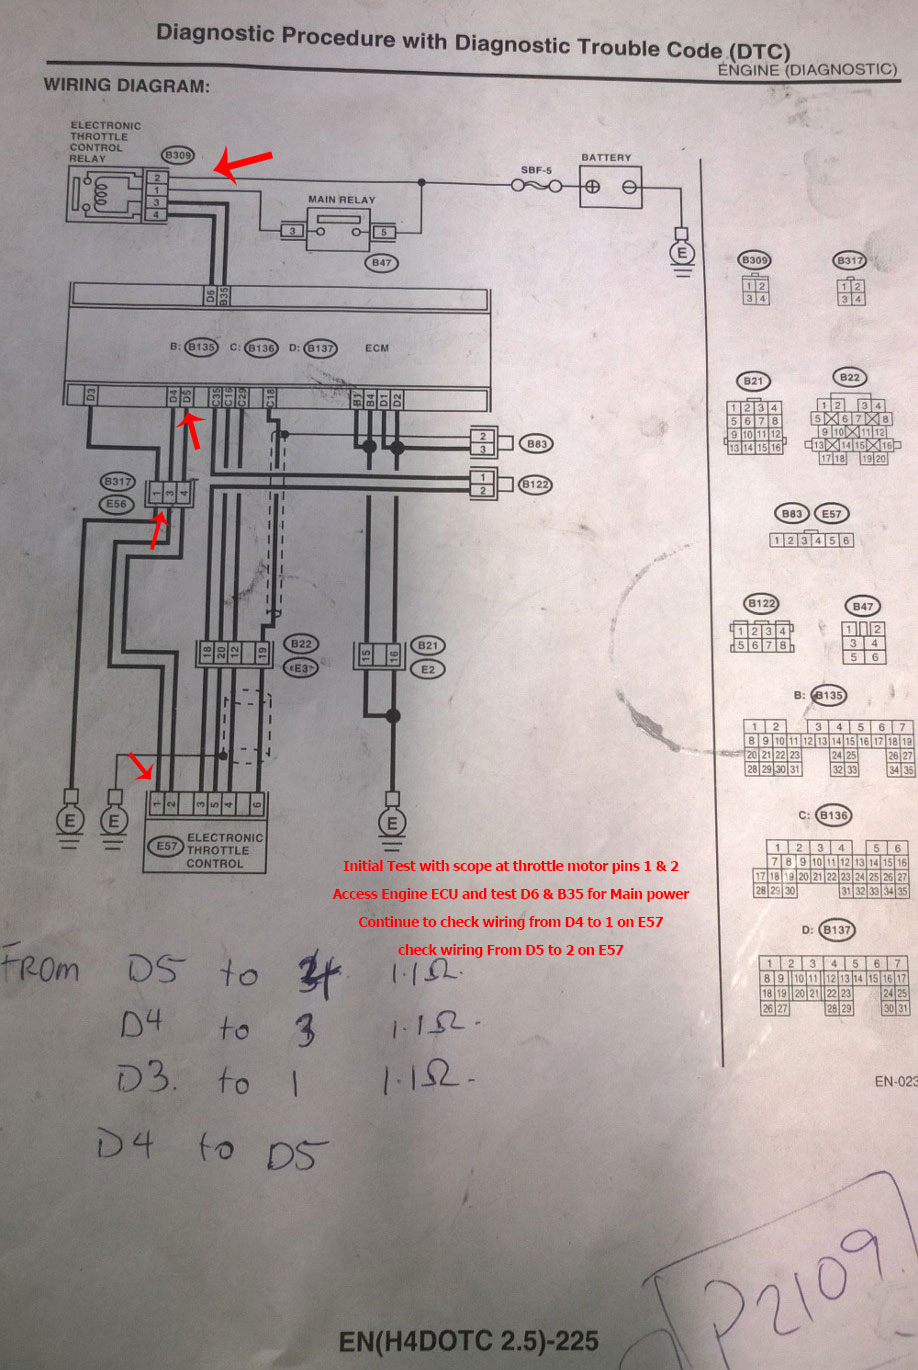 Subaru Forester Electronic Throttle faults p2109   P   G Motors